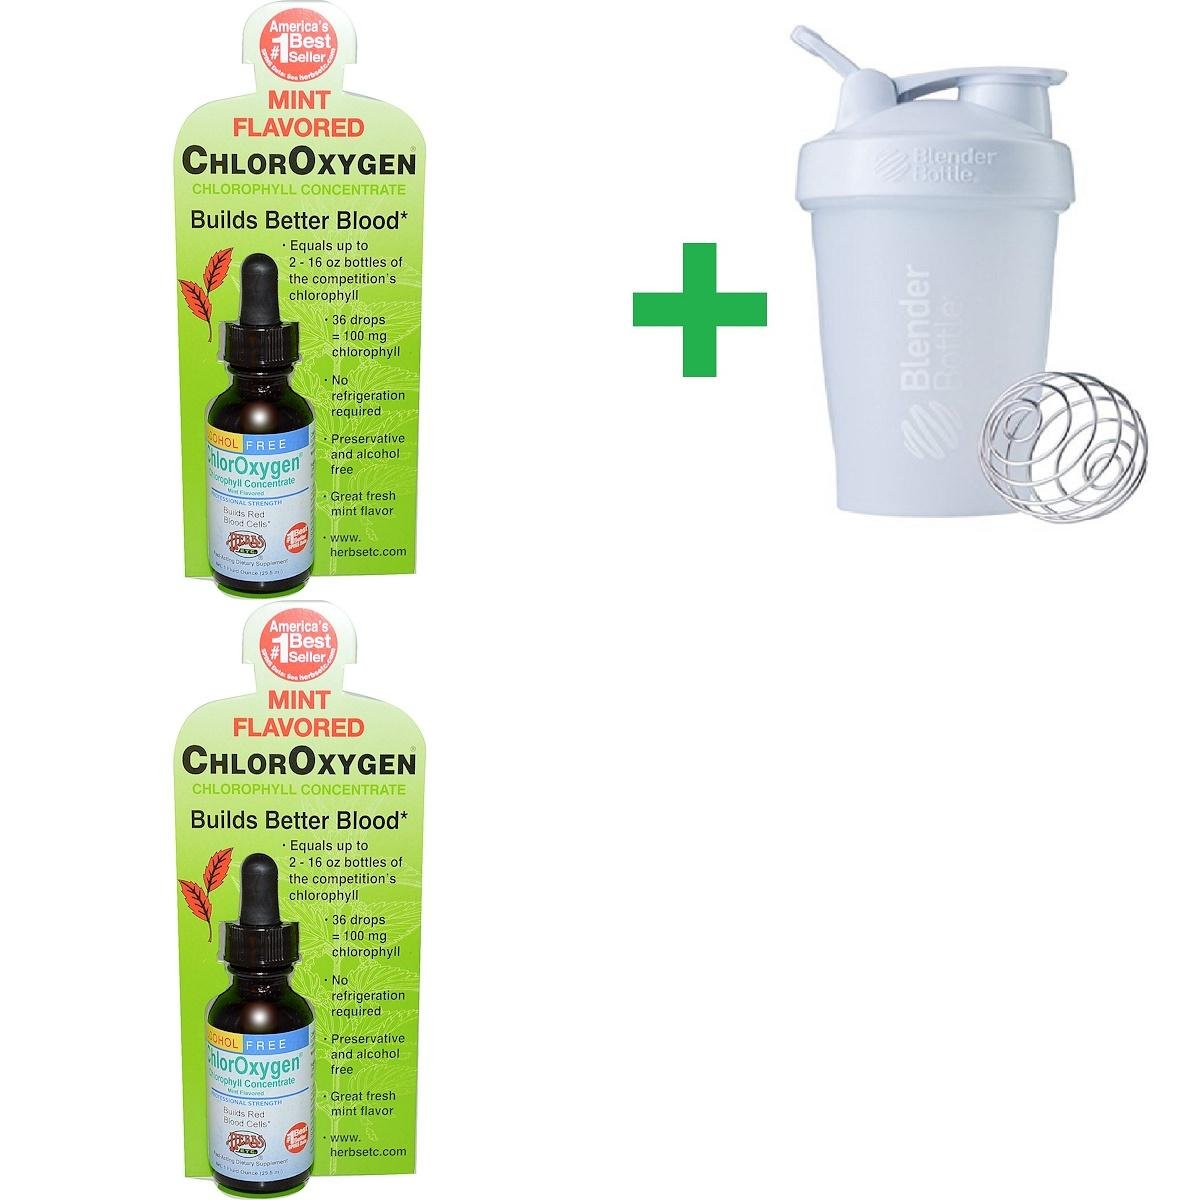 Herbs Etc, ChlorOxygen, Chlorophyll Concentrate, Alcohol Free, Mint Flavored, 1 fl oz (29.5 ml)(2 PCS)+ Assorted Sundesa, BlenderBottle, Classic with Loop, 20 oz